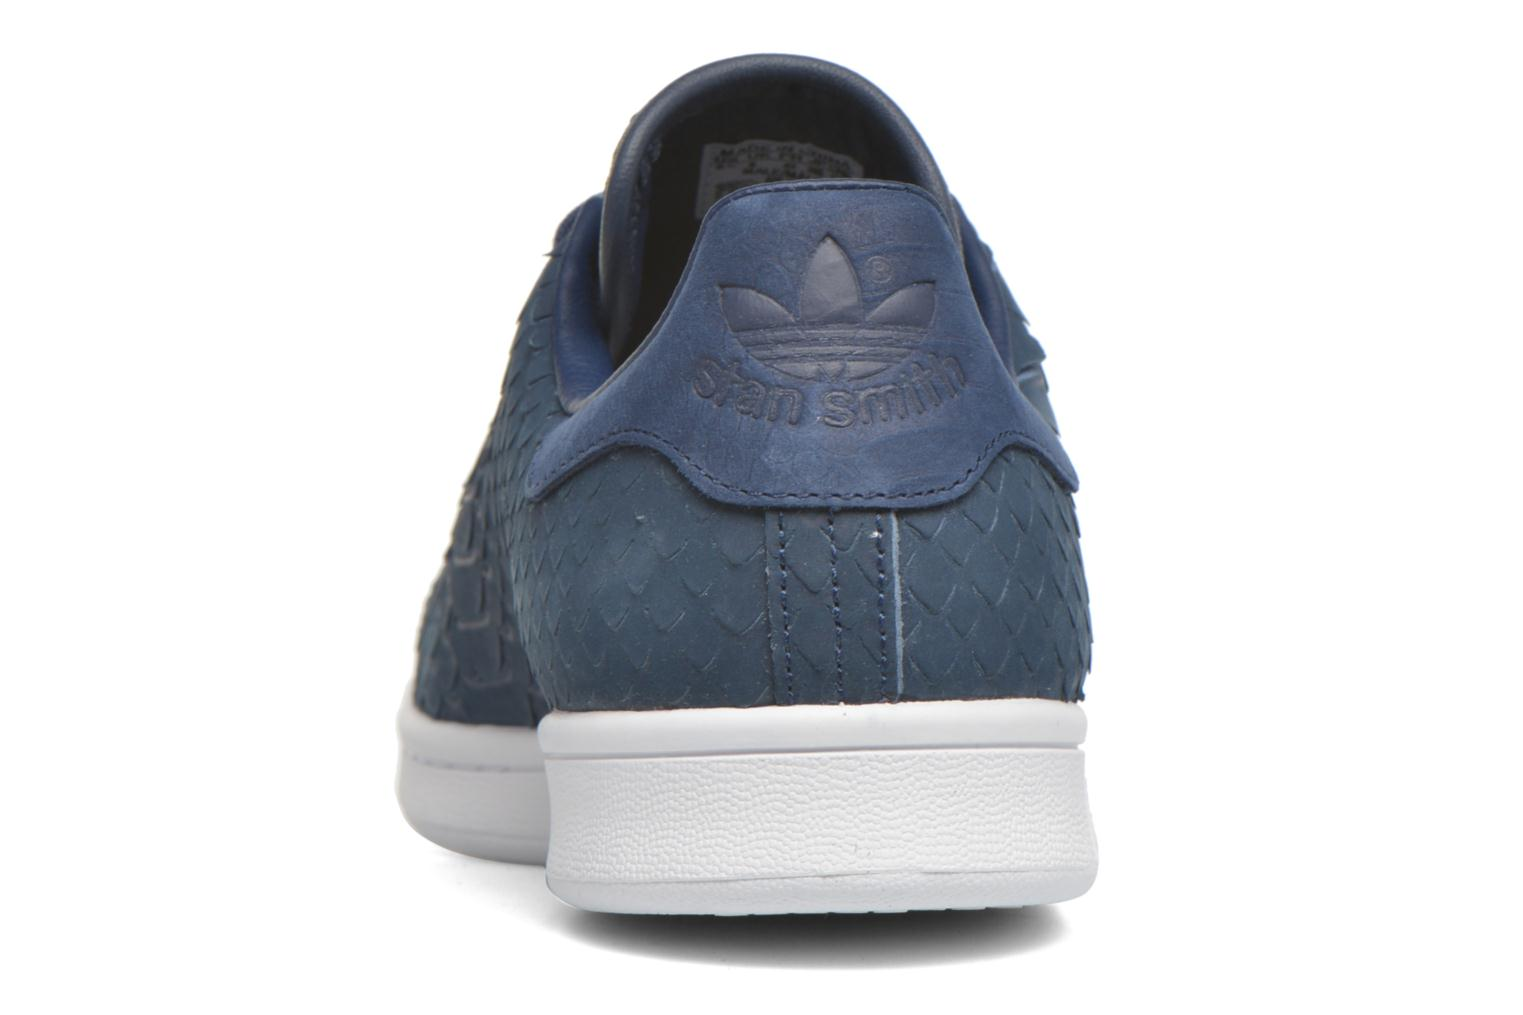 Stan Smith Decon Blnaco/Blnaco/Gracla